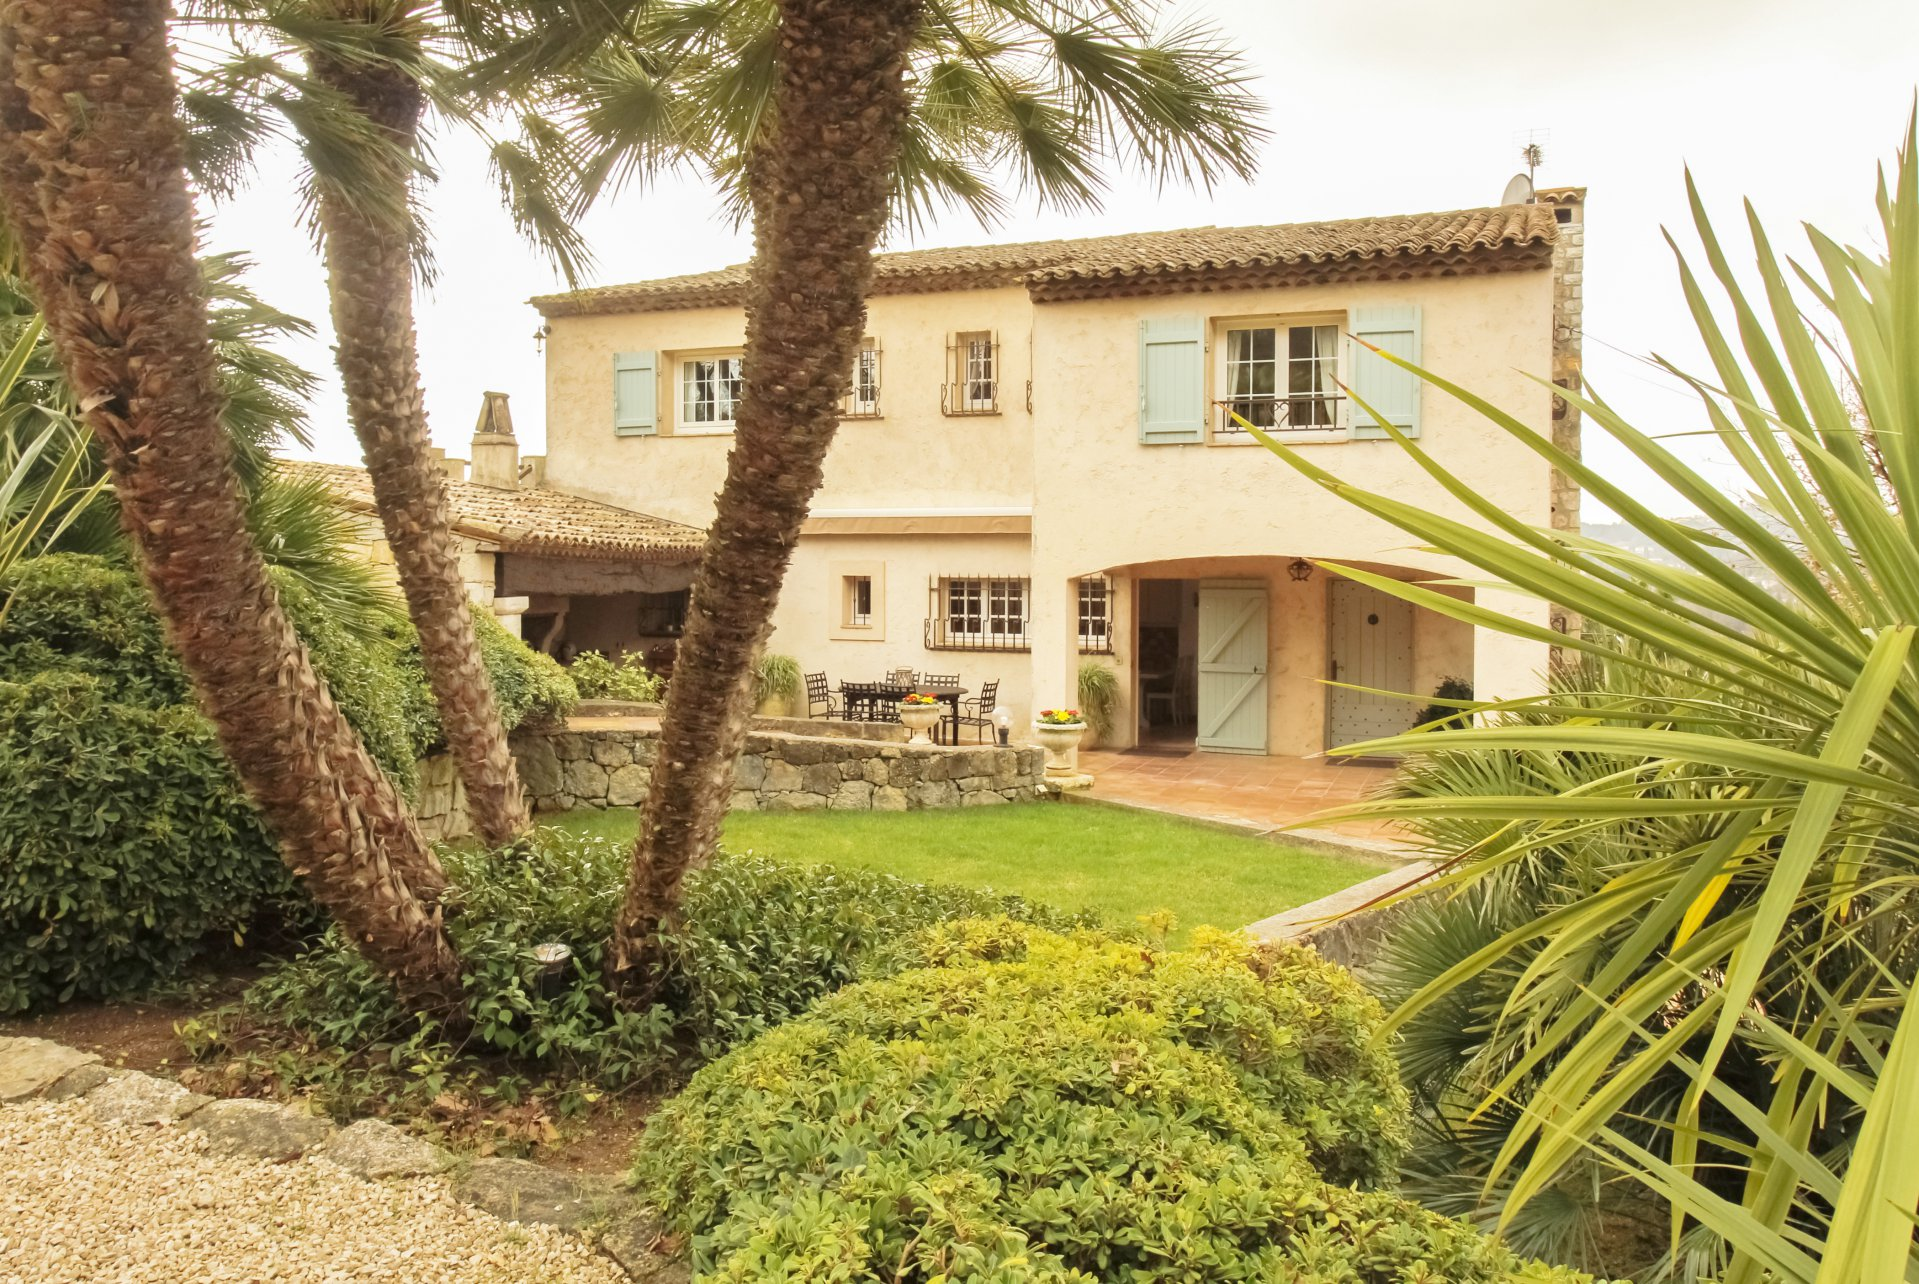 Provencal villa at only 250 meteres from the historical center of Valbonne Village.